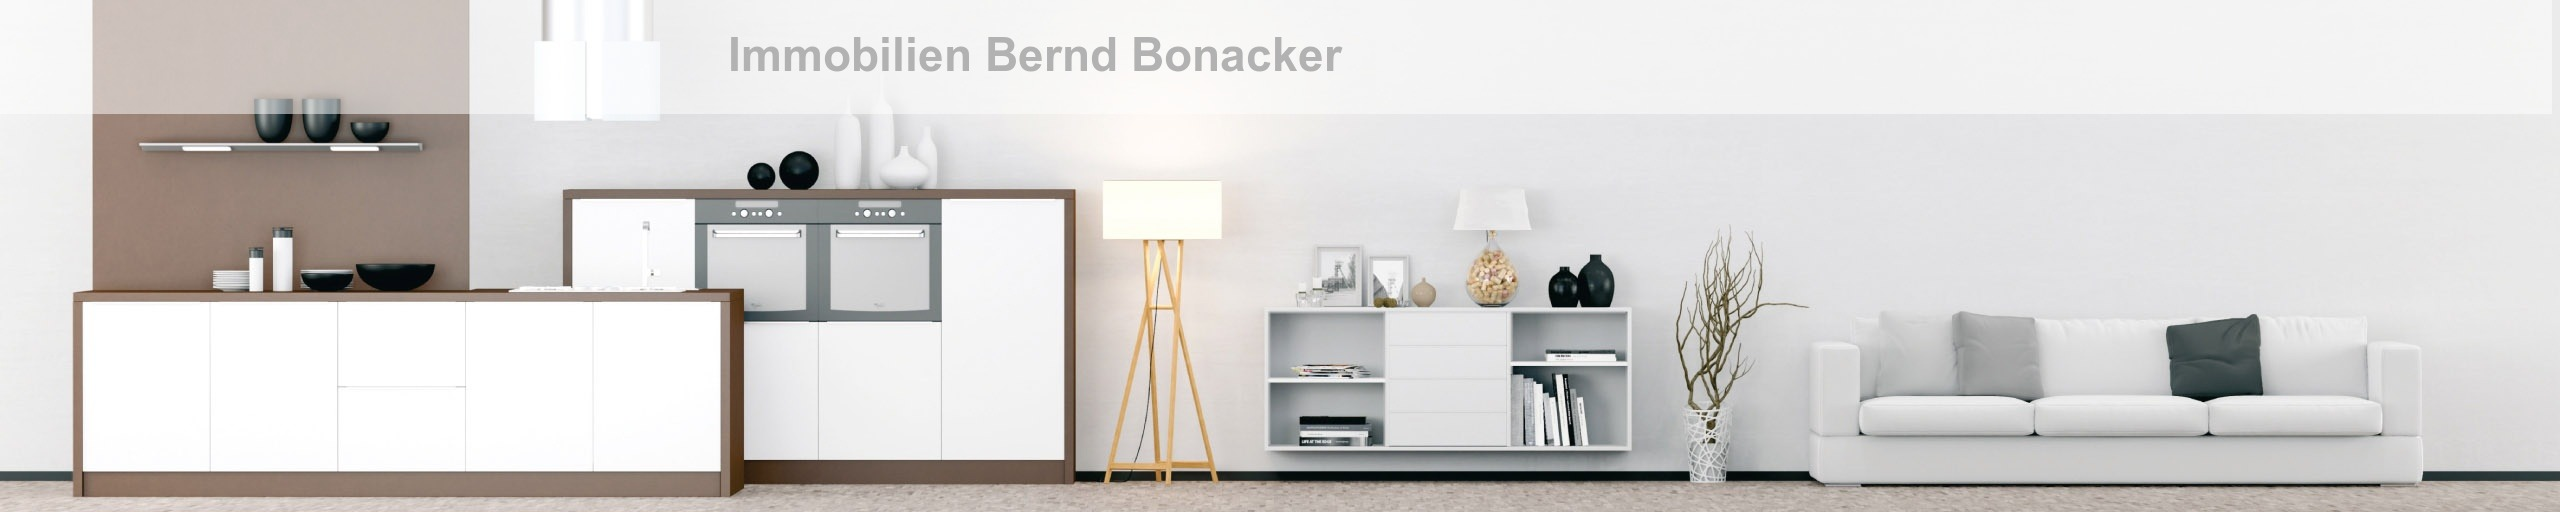 Bonacker Immobilien